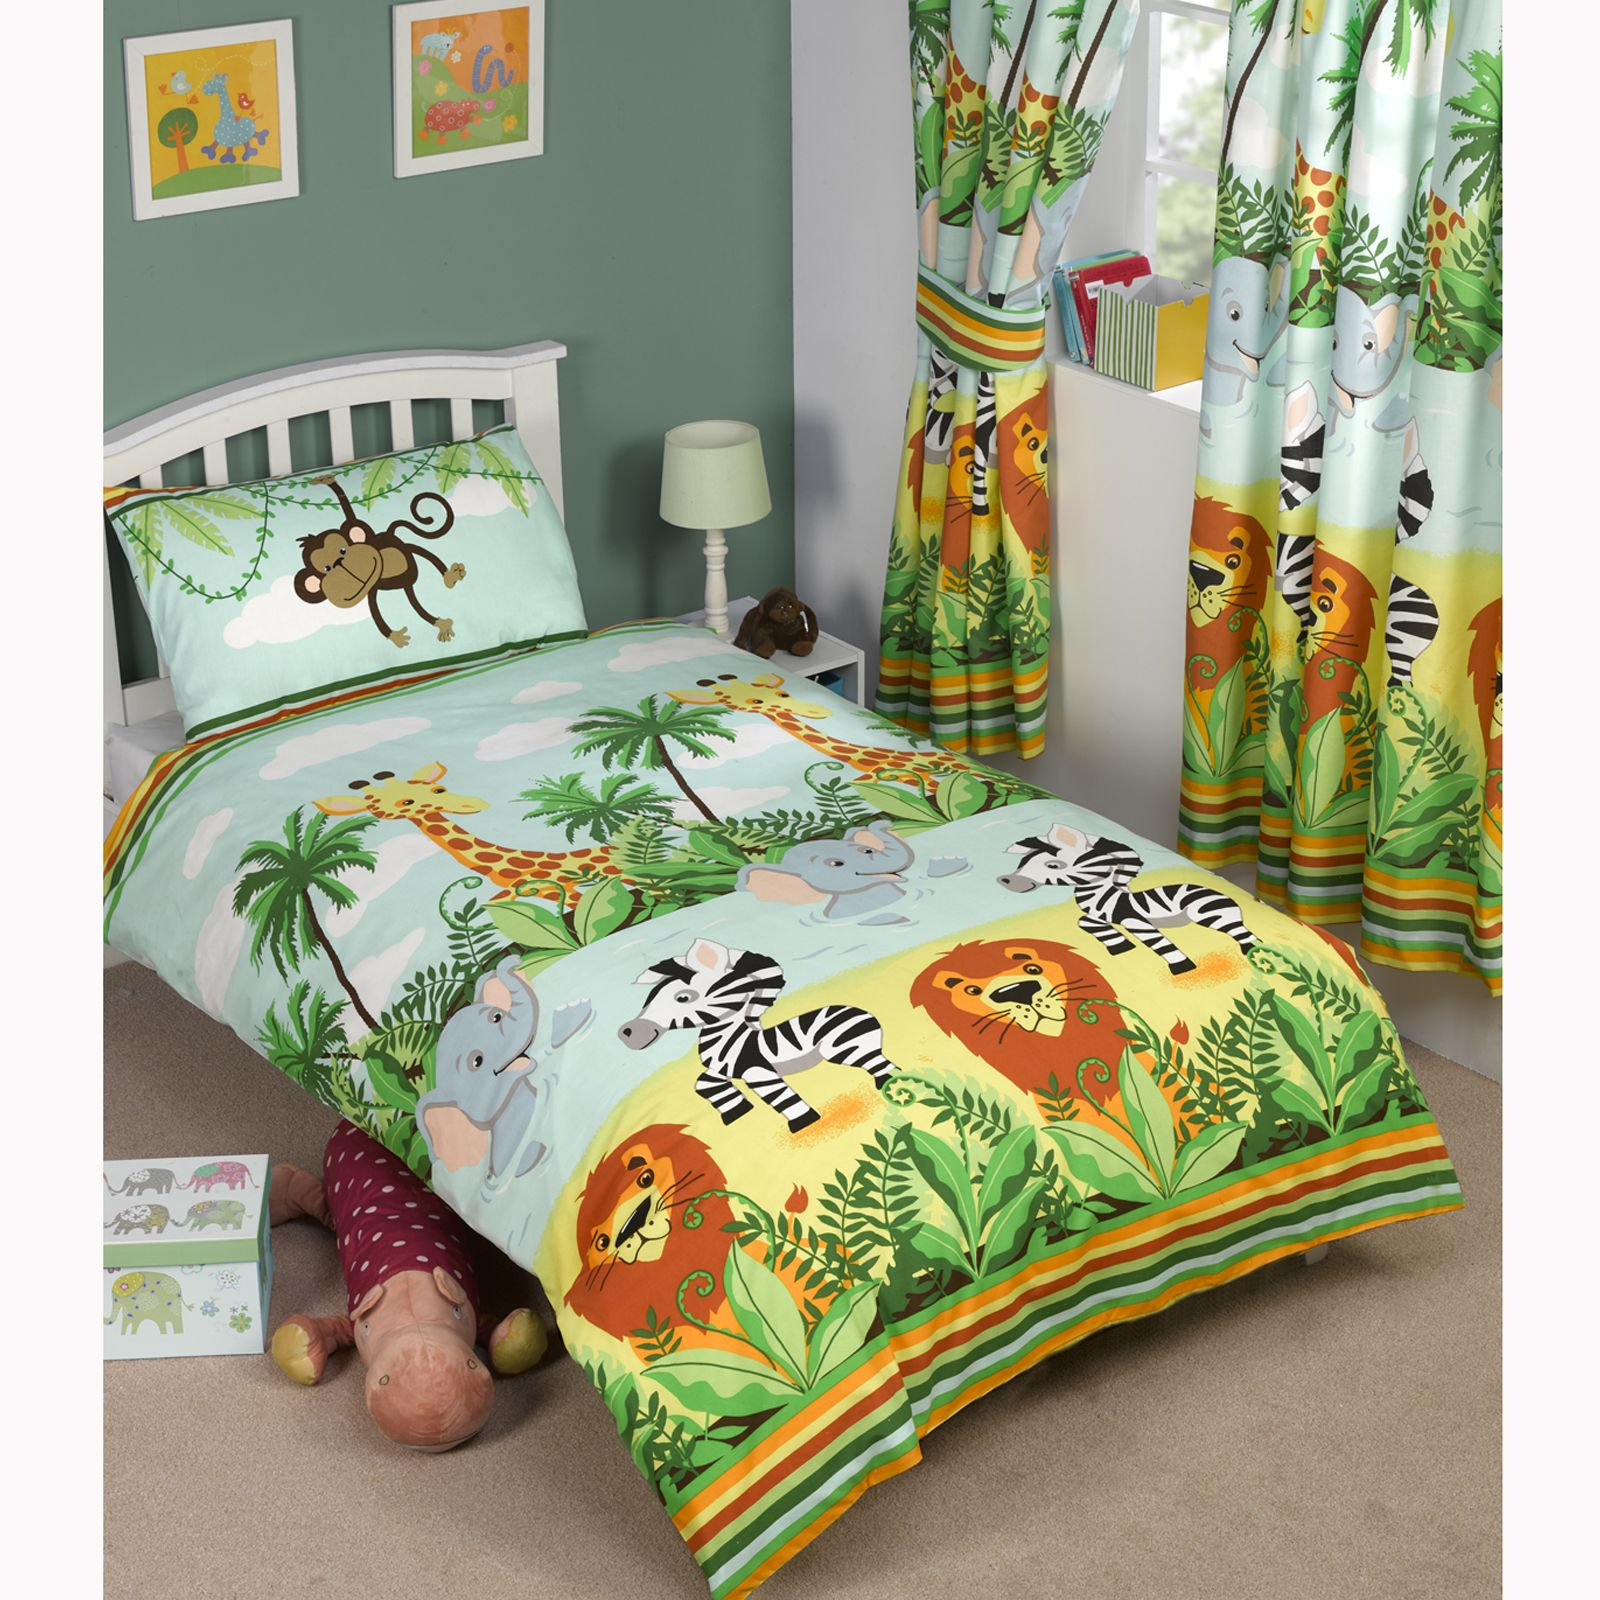 JUNGLE TASTIC ANIMAL THEMED BEDDING BEDROOM SINGLE TODDLER. JUNGLE TASTIC ANIMAL THEMED BEDDING BEDROOM   SINGLE  TODDLER  amp